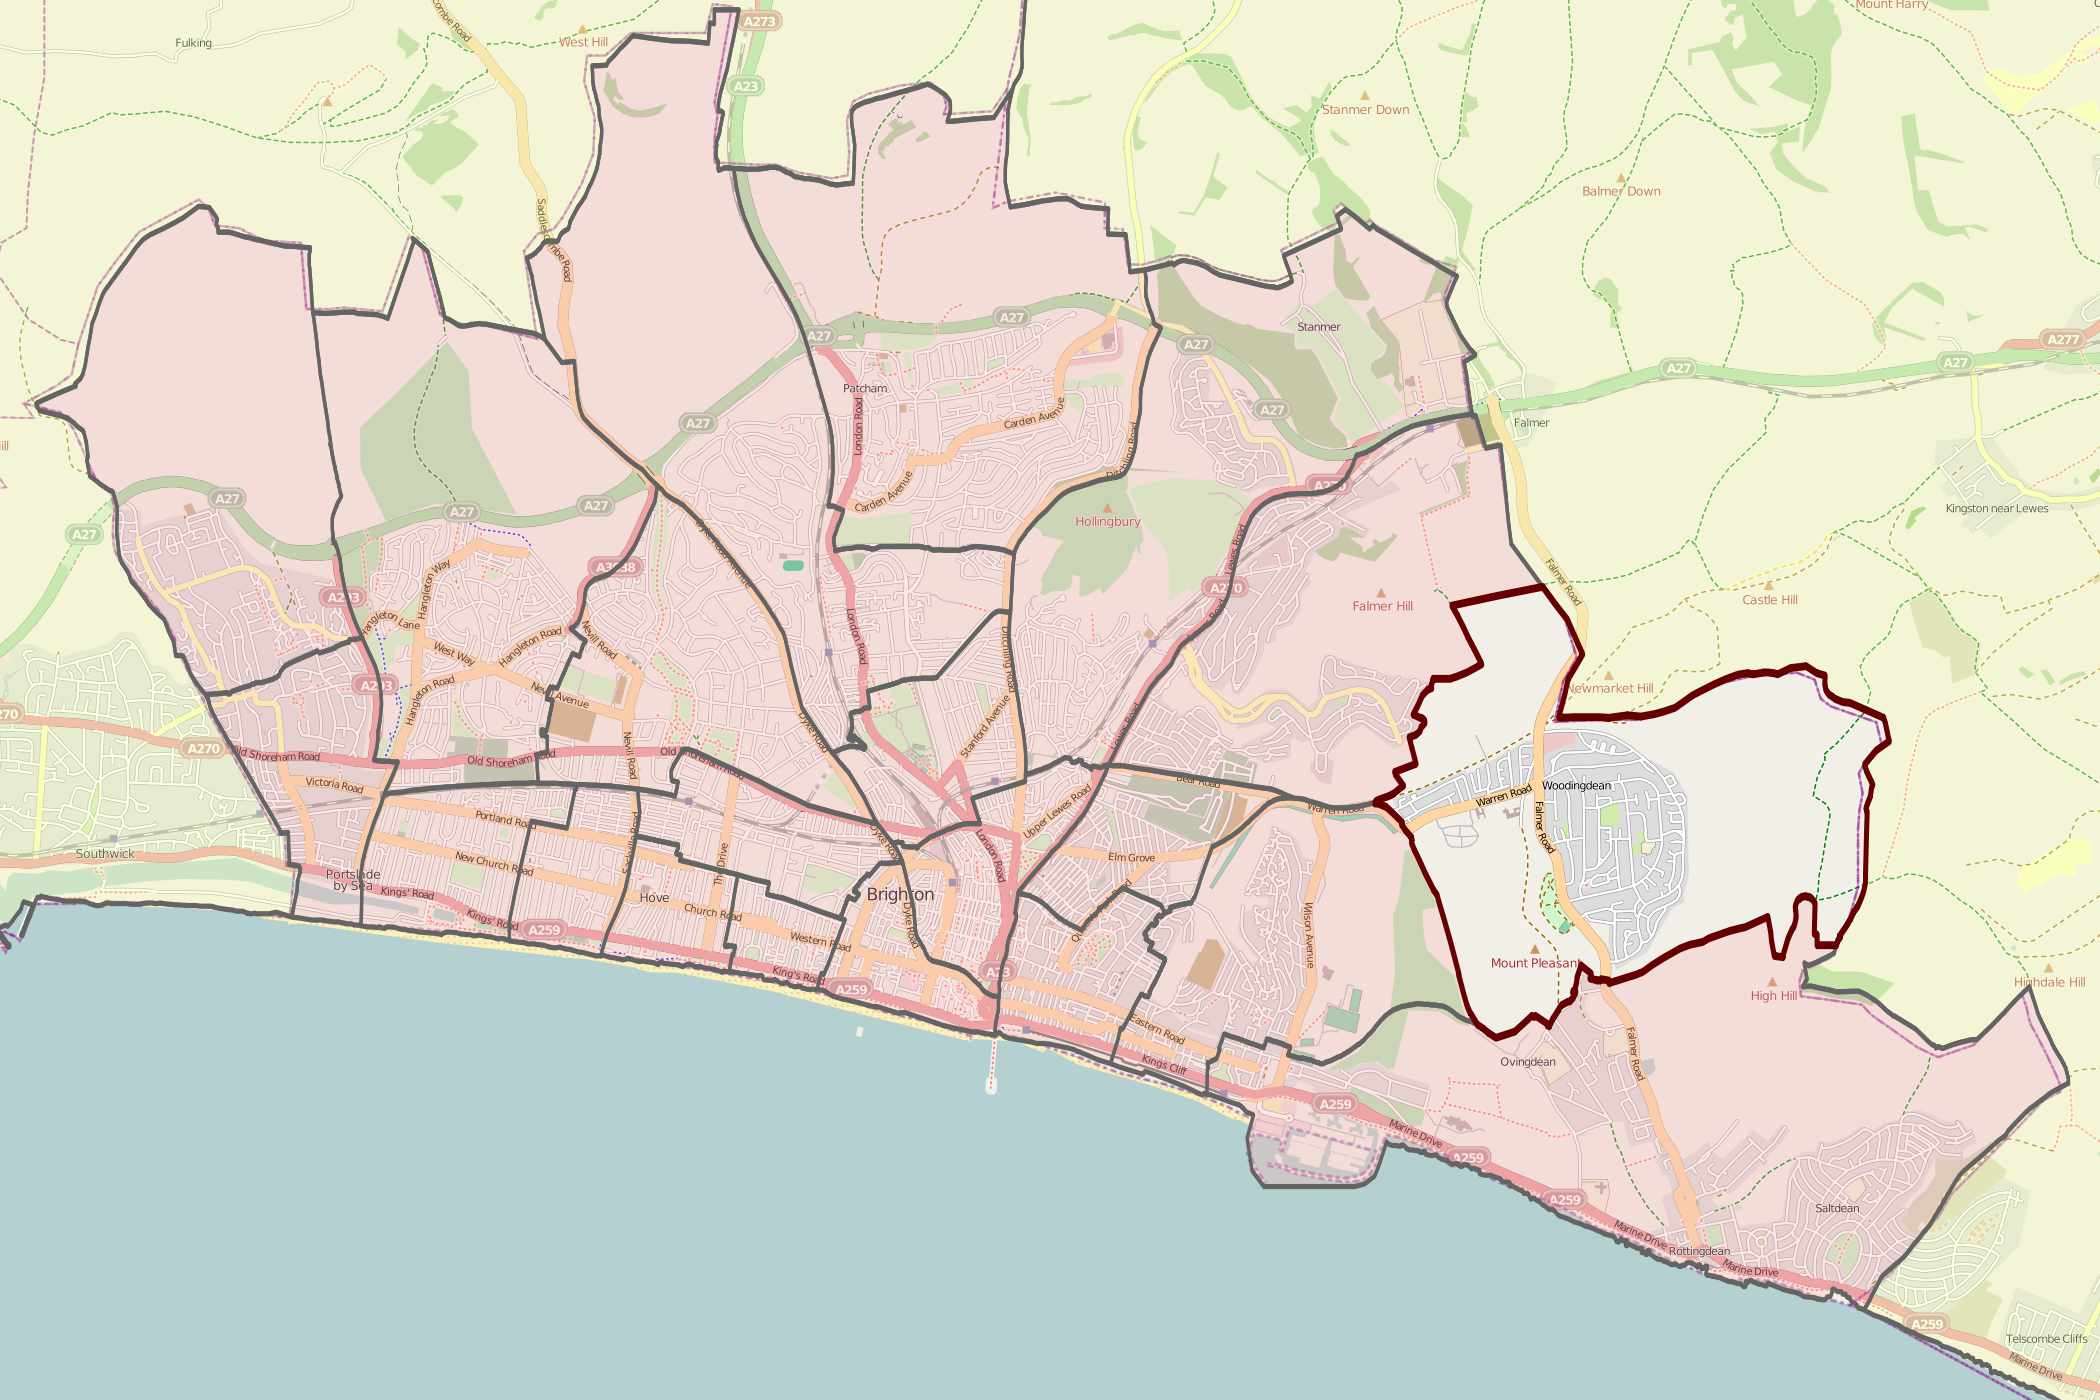 Map Of Brighton And Hove File:Map of Brighton and Hove wards  Woodingdean.   Wikimedia  Map Of Brighton And Hove